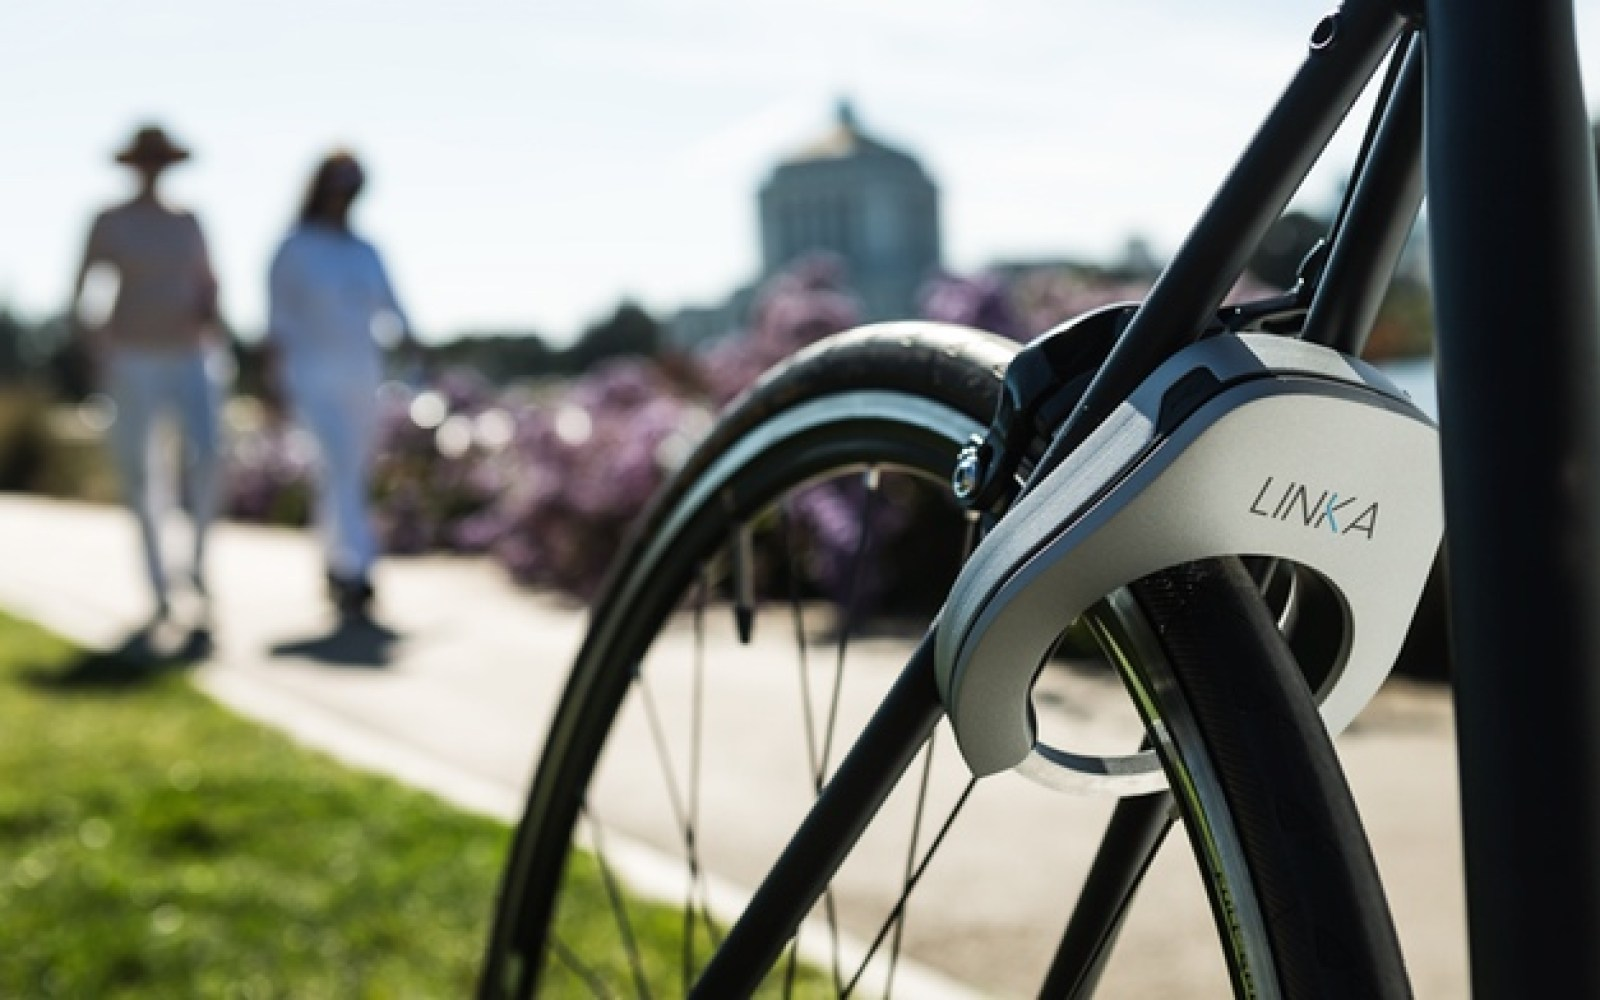 LINKA will keep your bike secure and automatically unlock it when you walk up with your iPhone